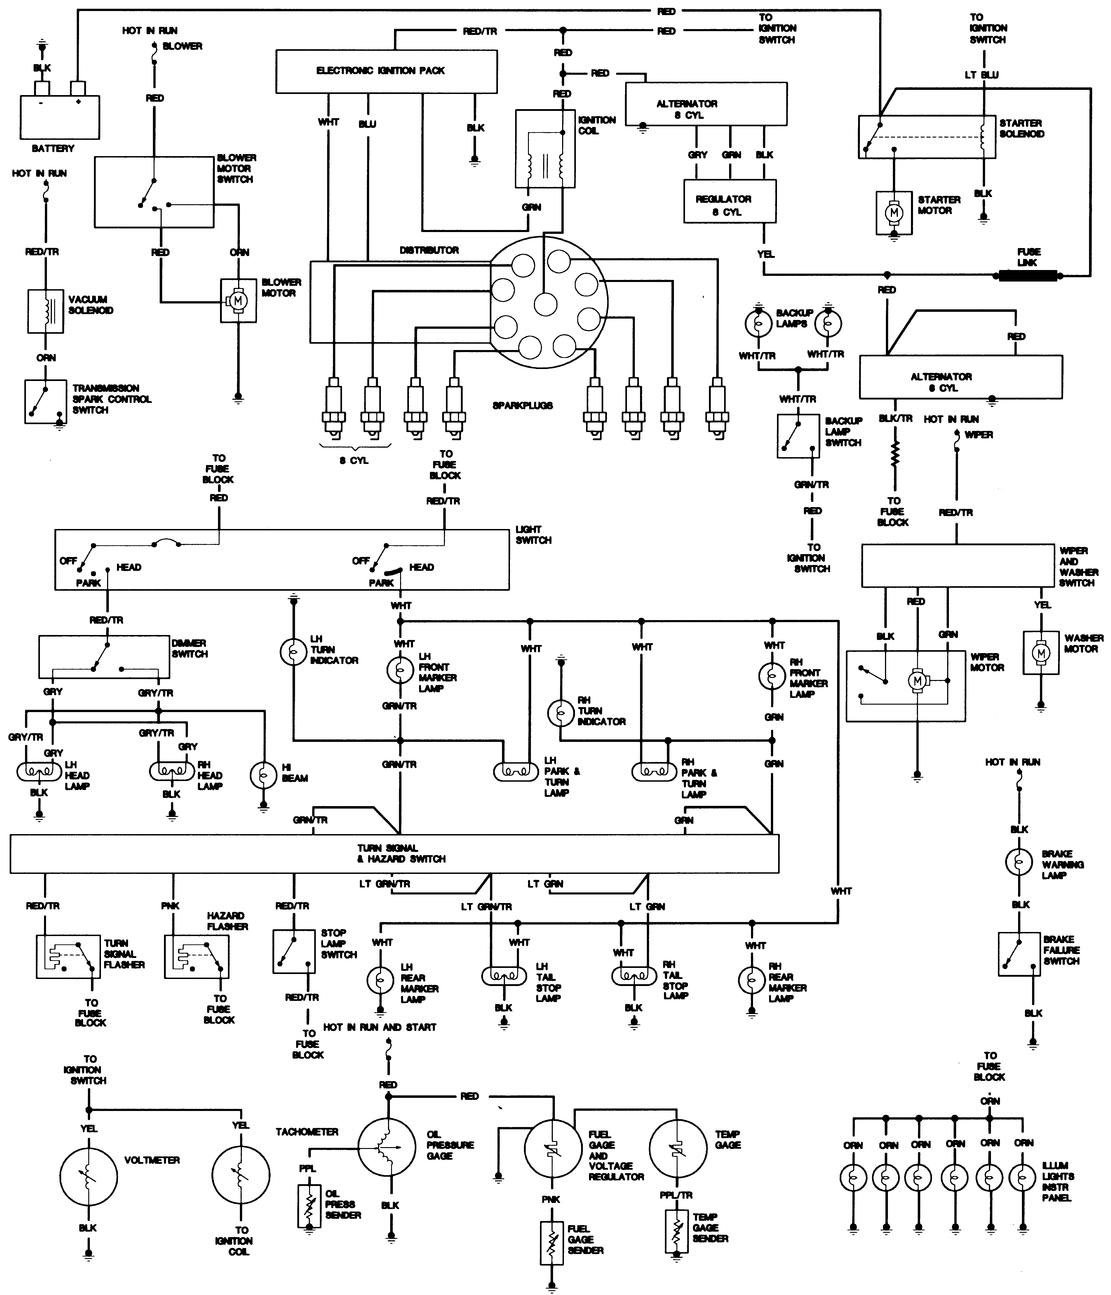 2010 12 13_230632_1975_jeep_cj5_wiring_diagram friendship quotes jeep cj5 wiring diagram 1978 Electrical Wiring for 1971 Jeep CJ5 at n-0.co